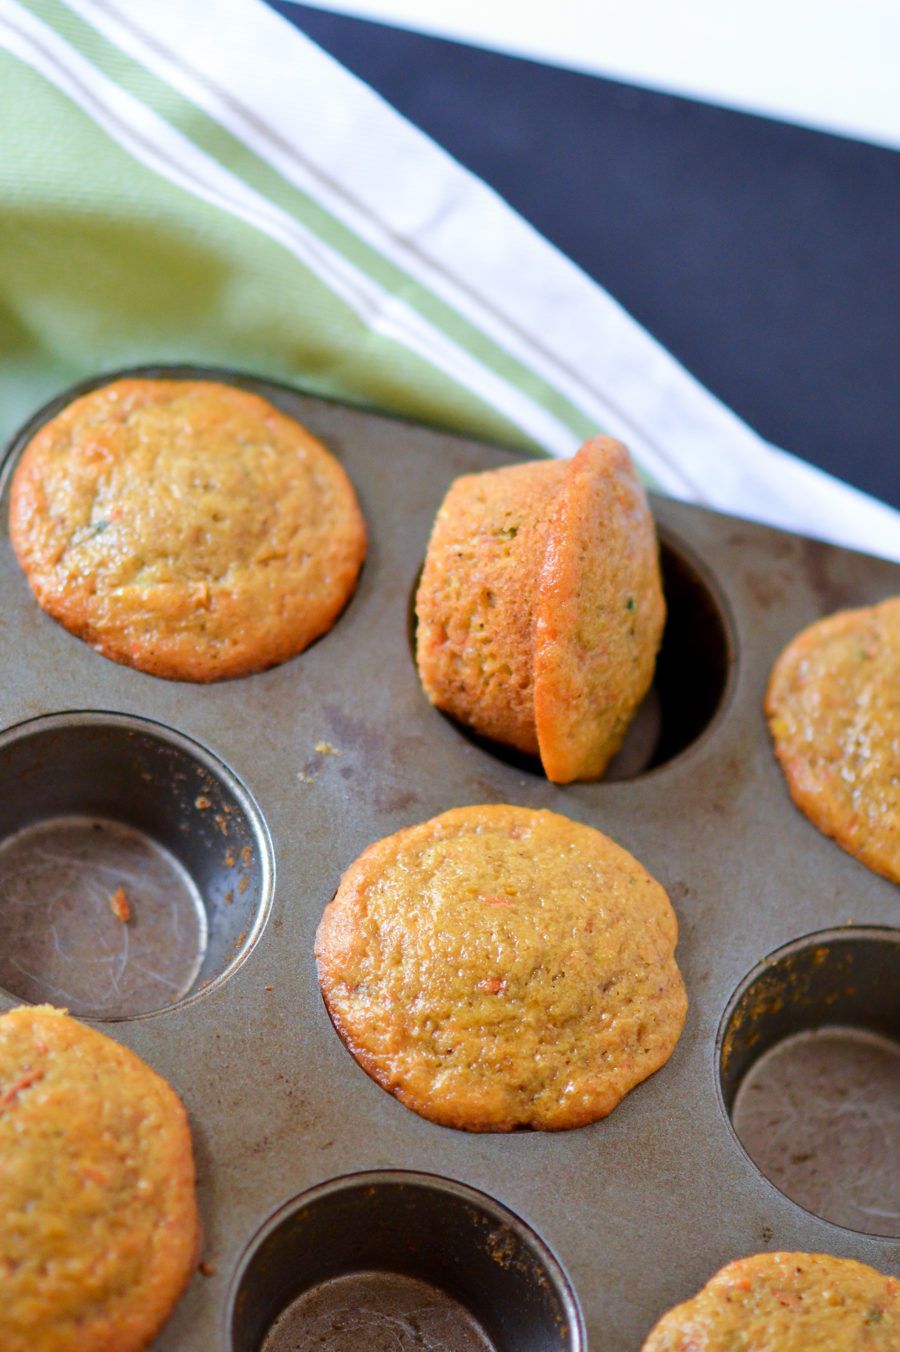 Orange + Carrot Healthy Breakfast Muffins